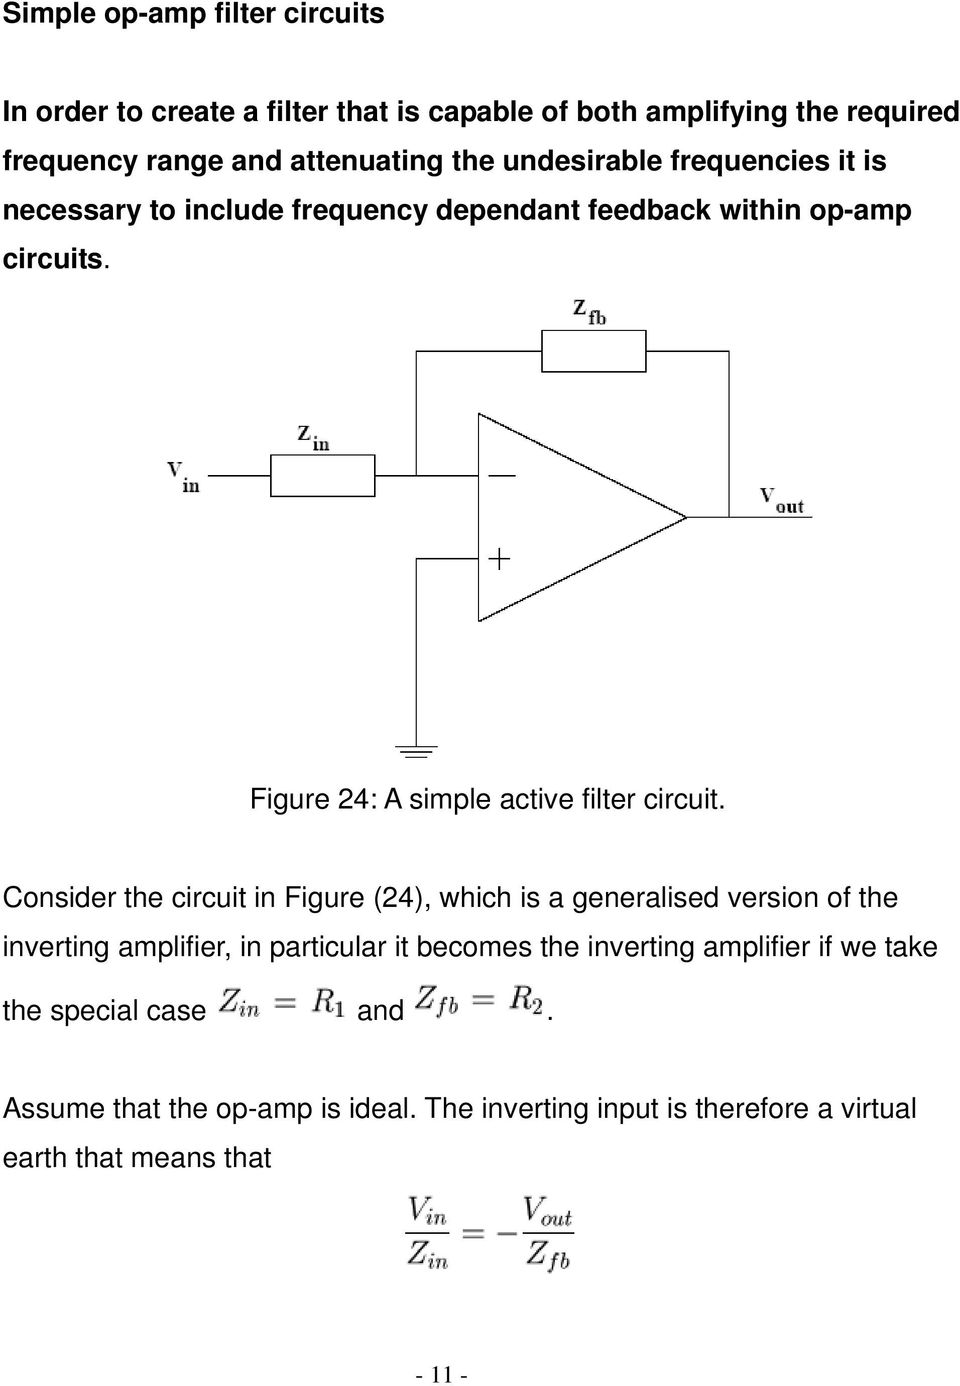 Figure 24: A simple active filter circuit.